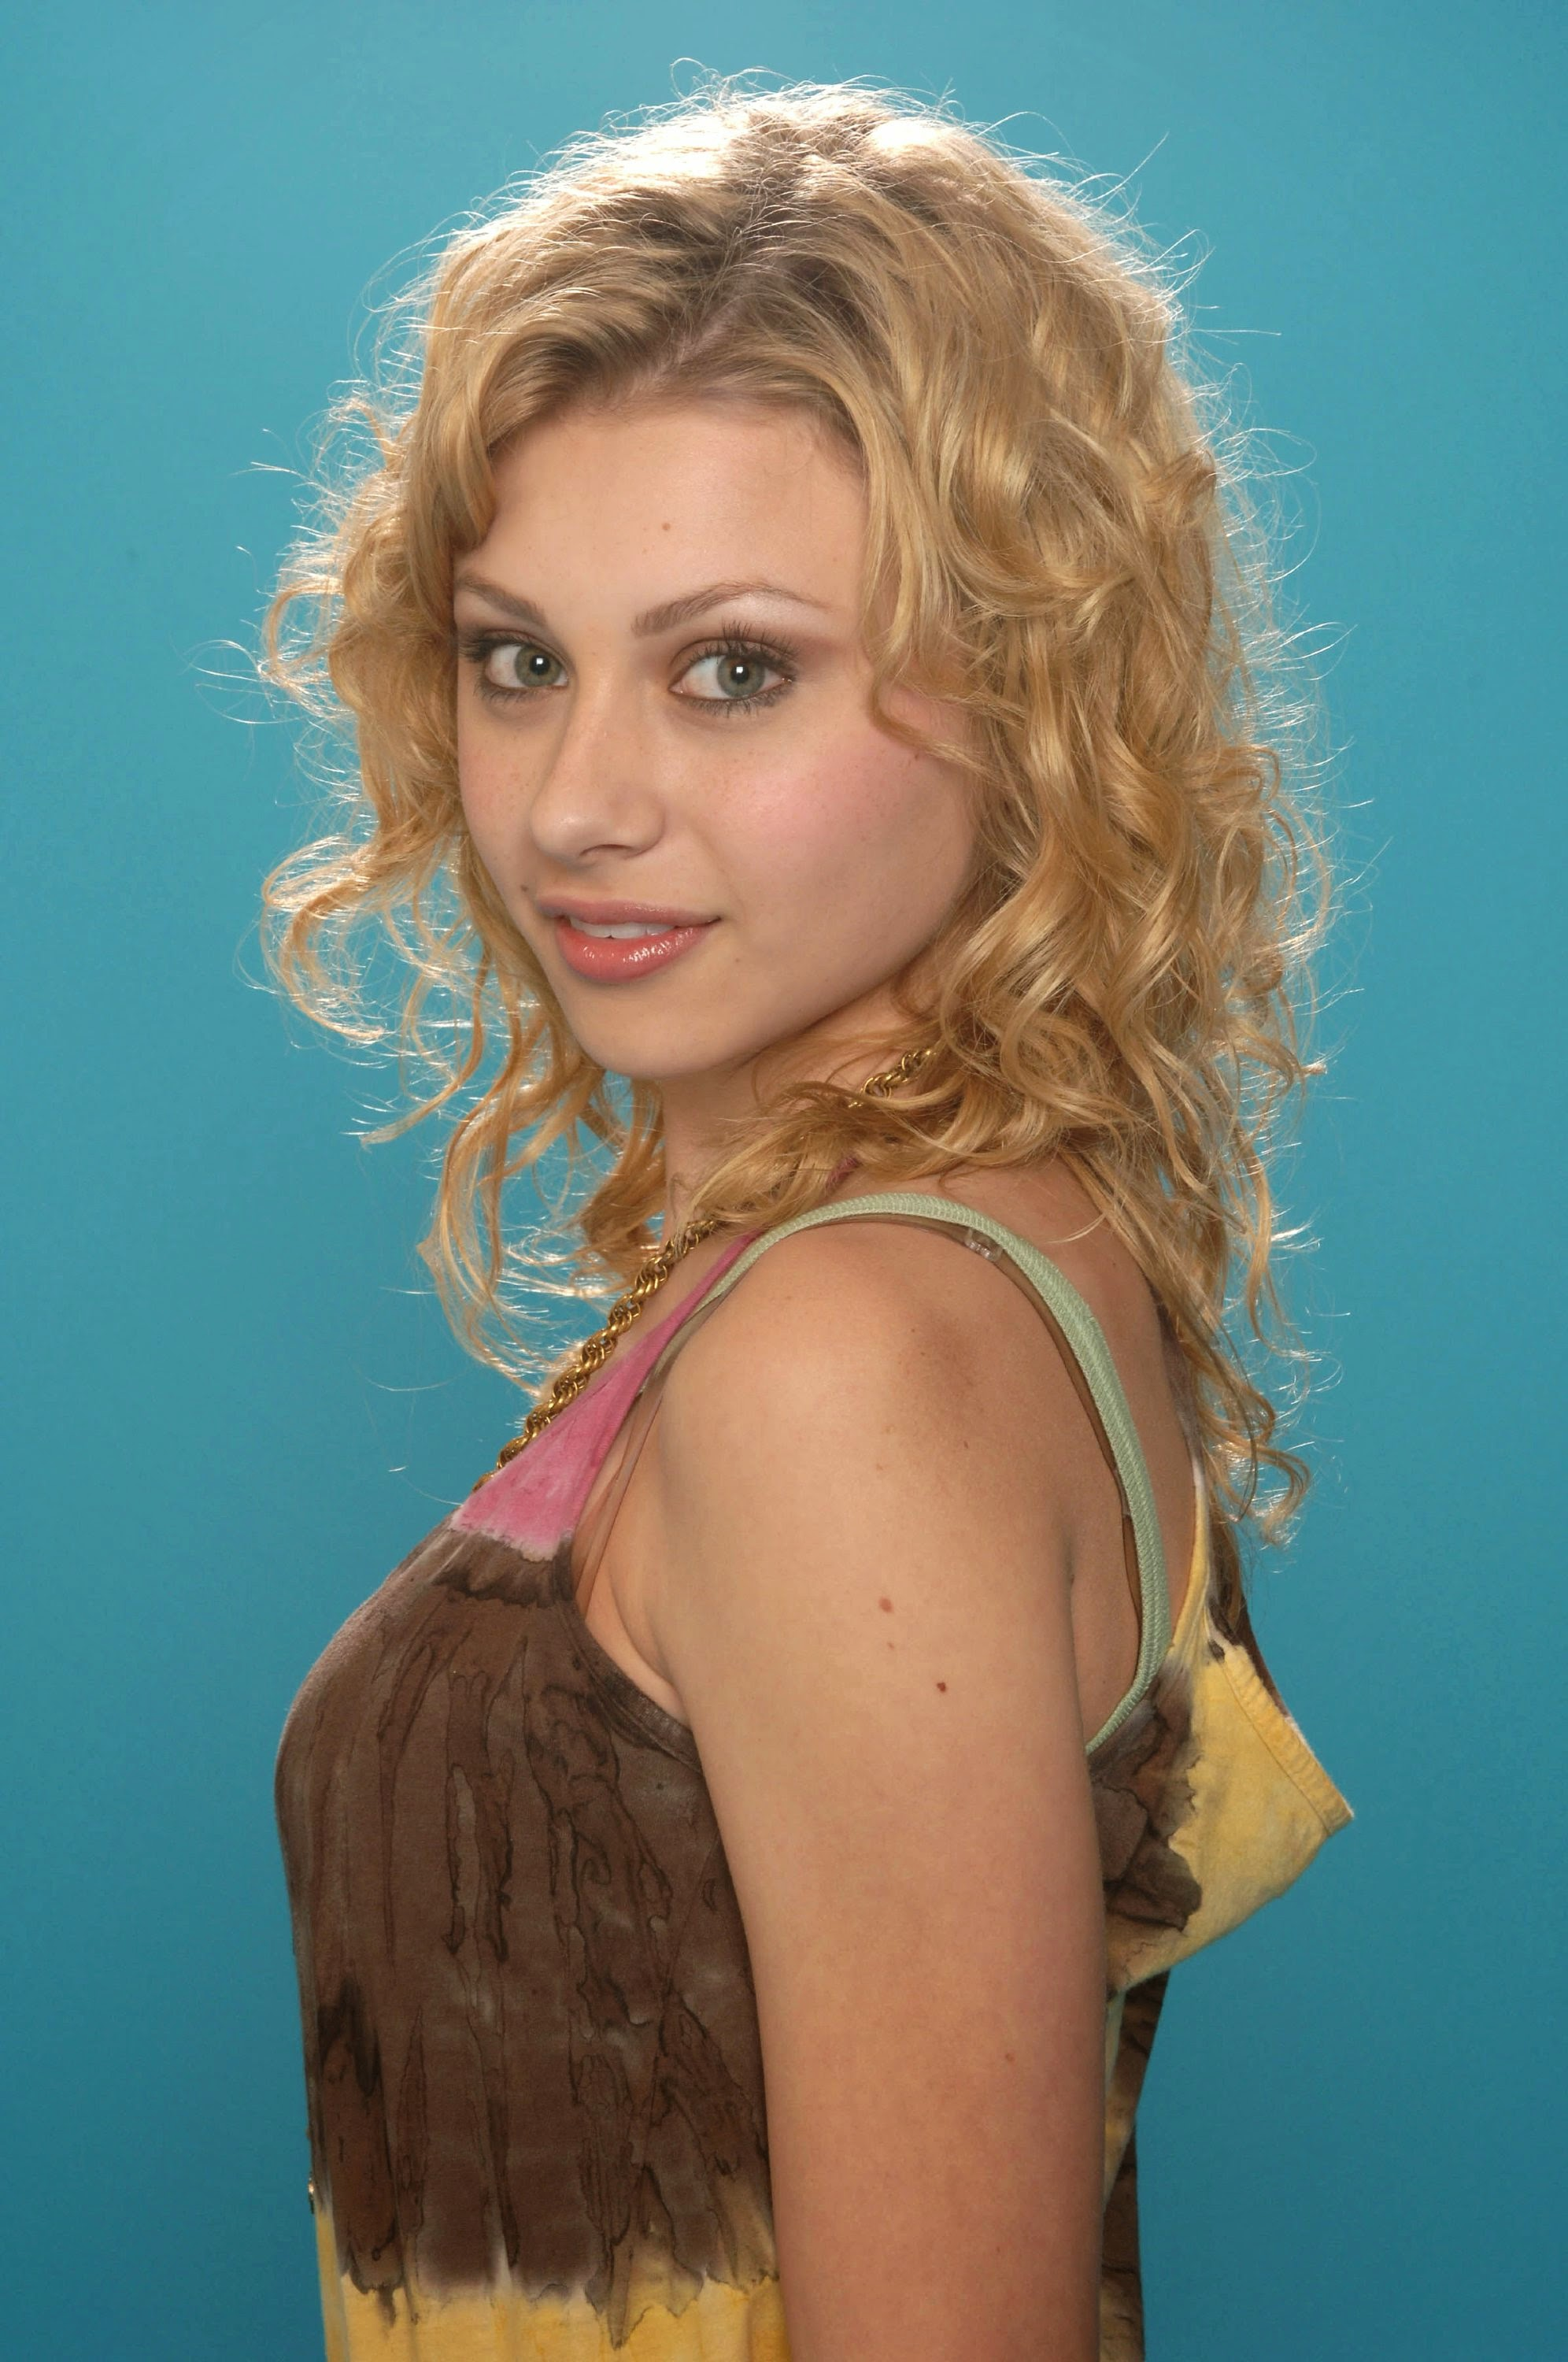 Alyson Aly Michalka Nude Photos 64